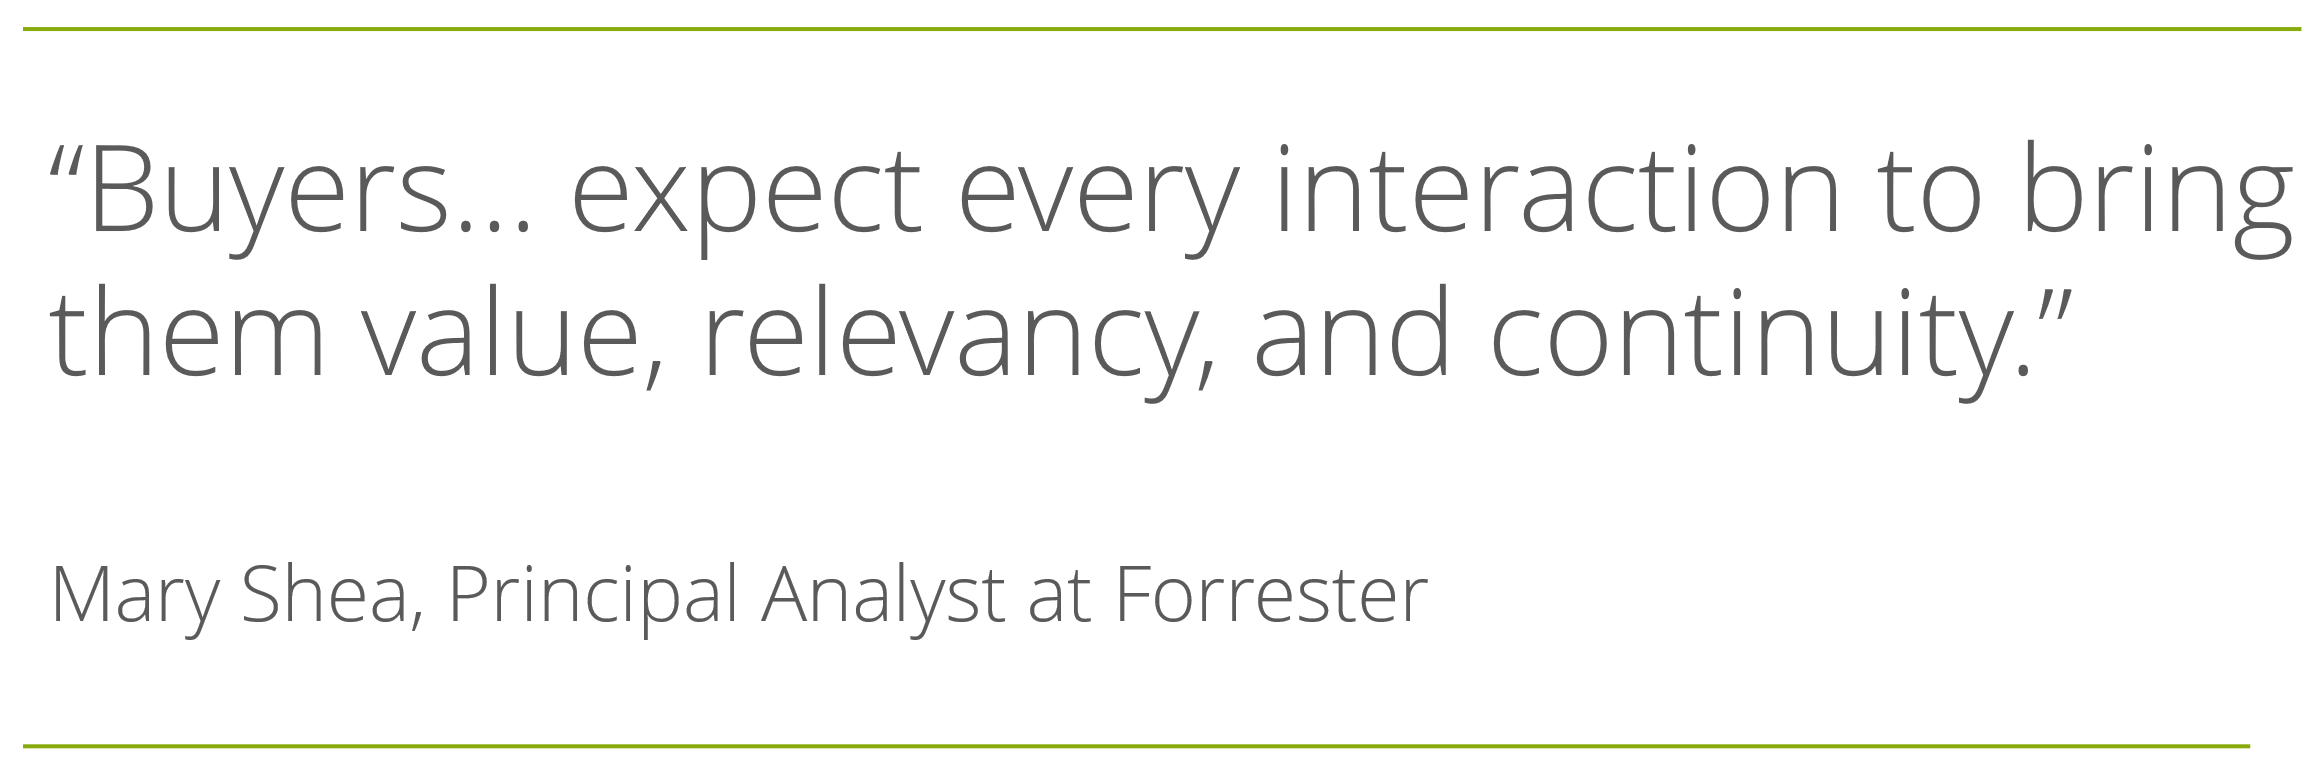 Forrester Quote-1